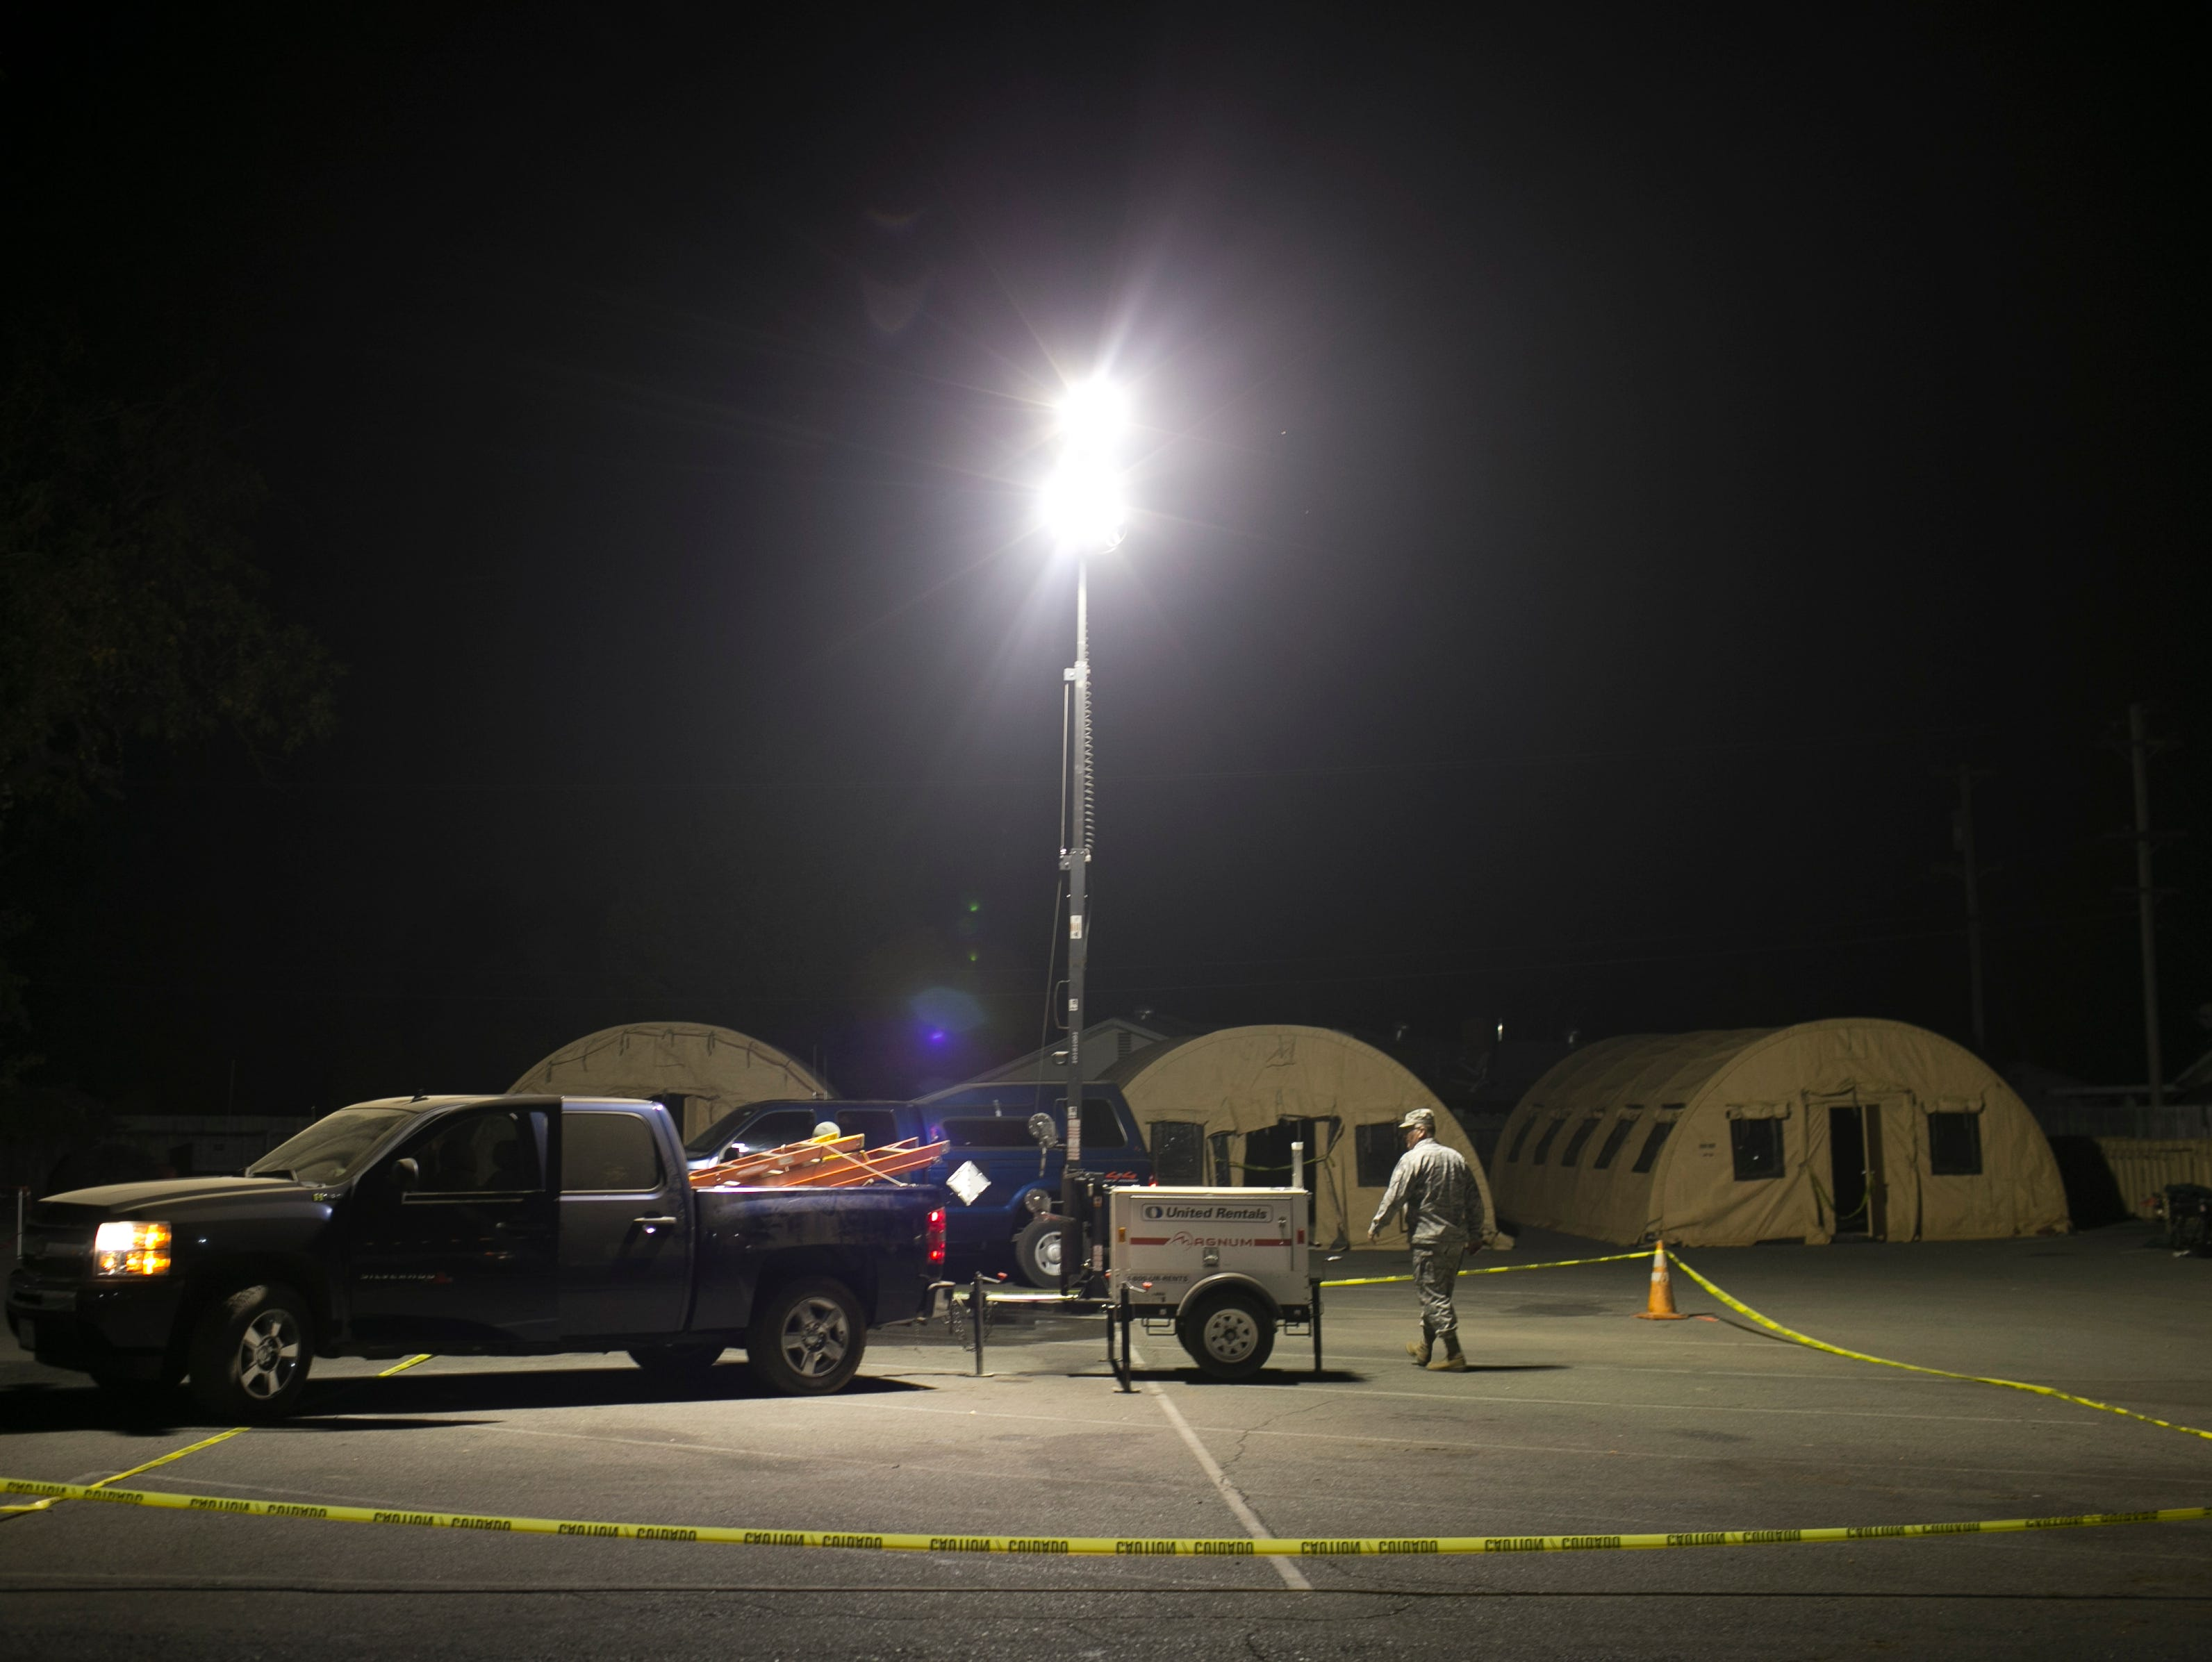 Members of the Air National Guard out of Fresno set up lights outside the East Avenue Church Shelter to help with working on isolation tents in Chico, California on November 17, 2018. According to volunteers at the shelter, the isolation tents had been dropped off by government officials three days before but had not been set up. Nearly a full week after the shelter had opened the three tents sat empty and unusable.